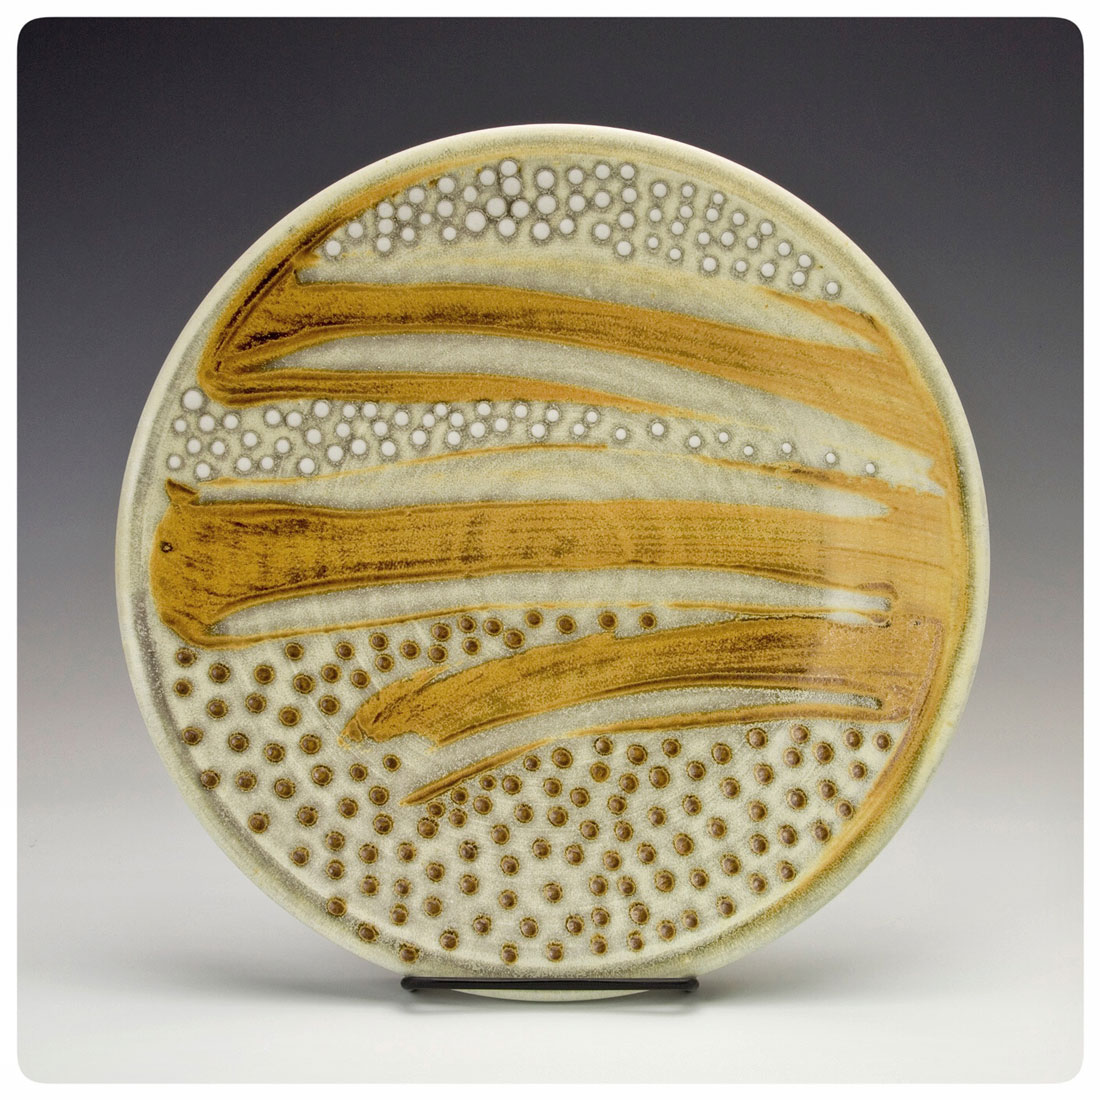 Plate with wide bands and dot pattern made by Samantha Henneke | Bulldog Pottery | Seagrove | North Carolina